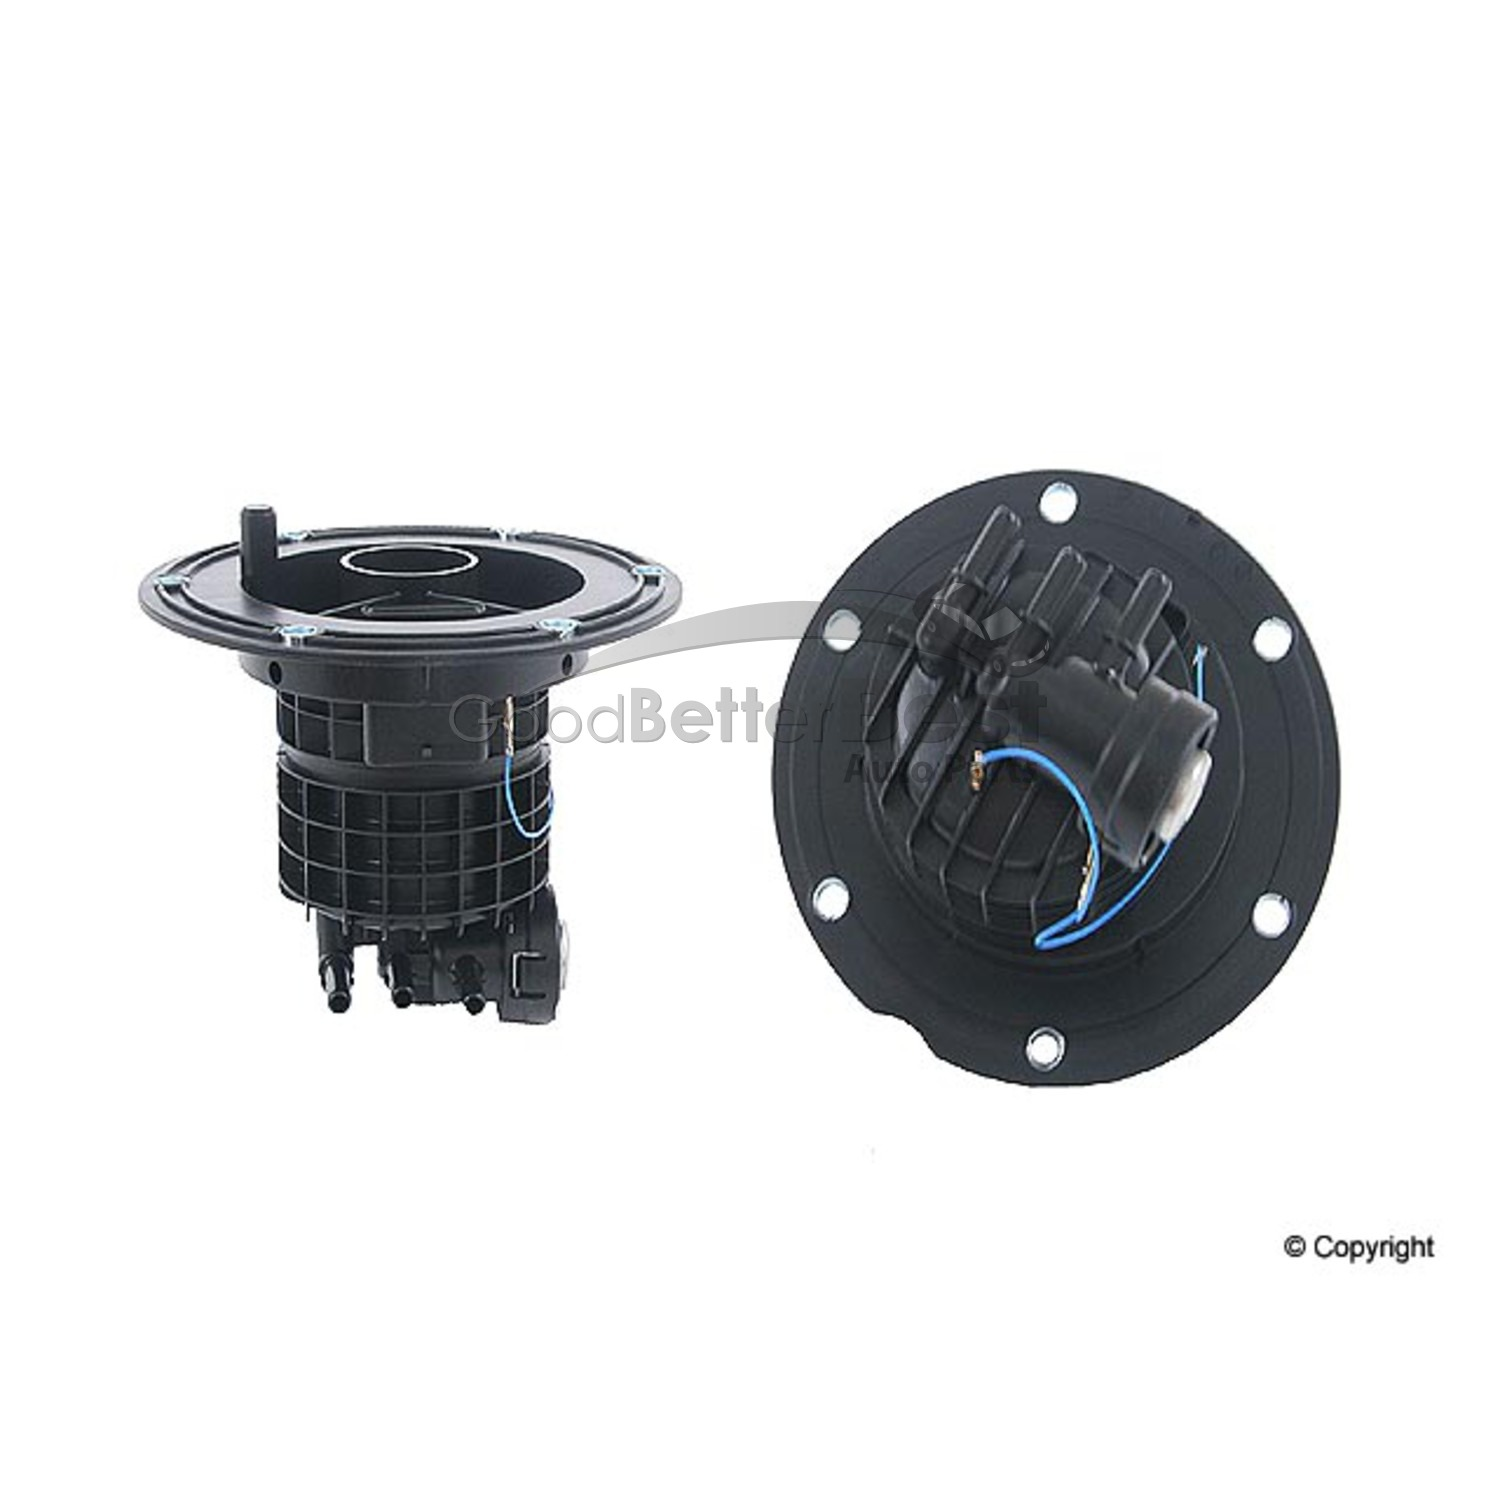 SPARES2GO Auxillary Black Burner Cap for Indesit Oven Cooker Hob Small Fitment List A 55mm